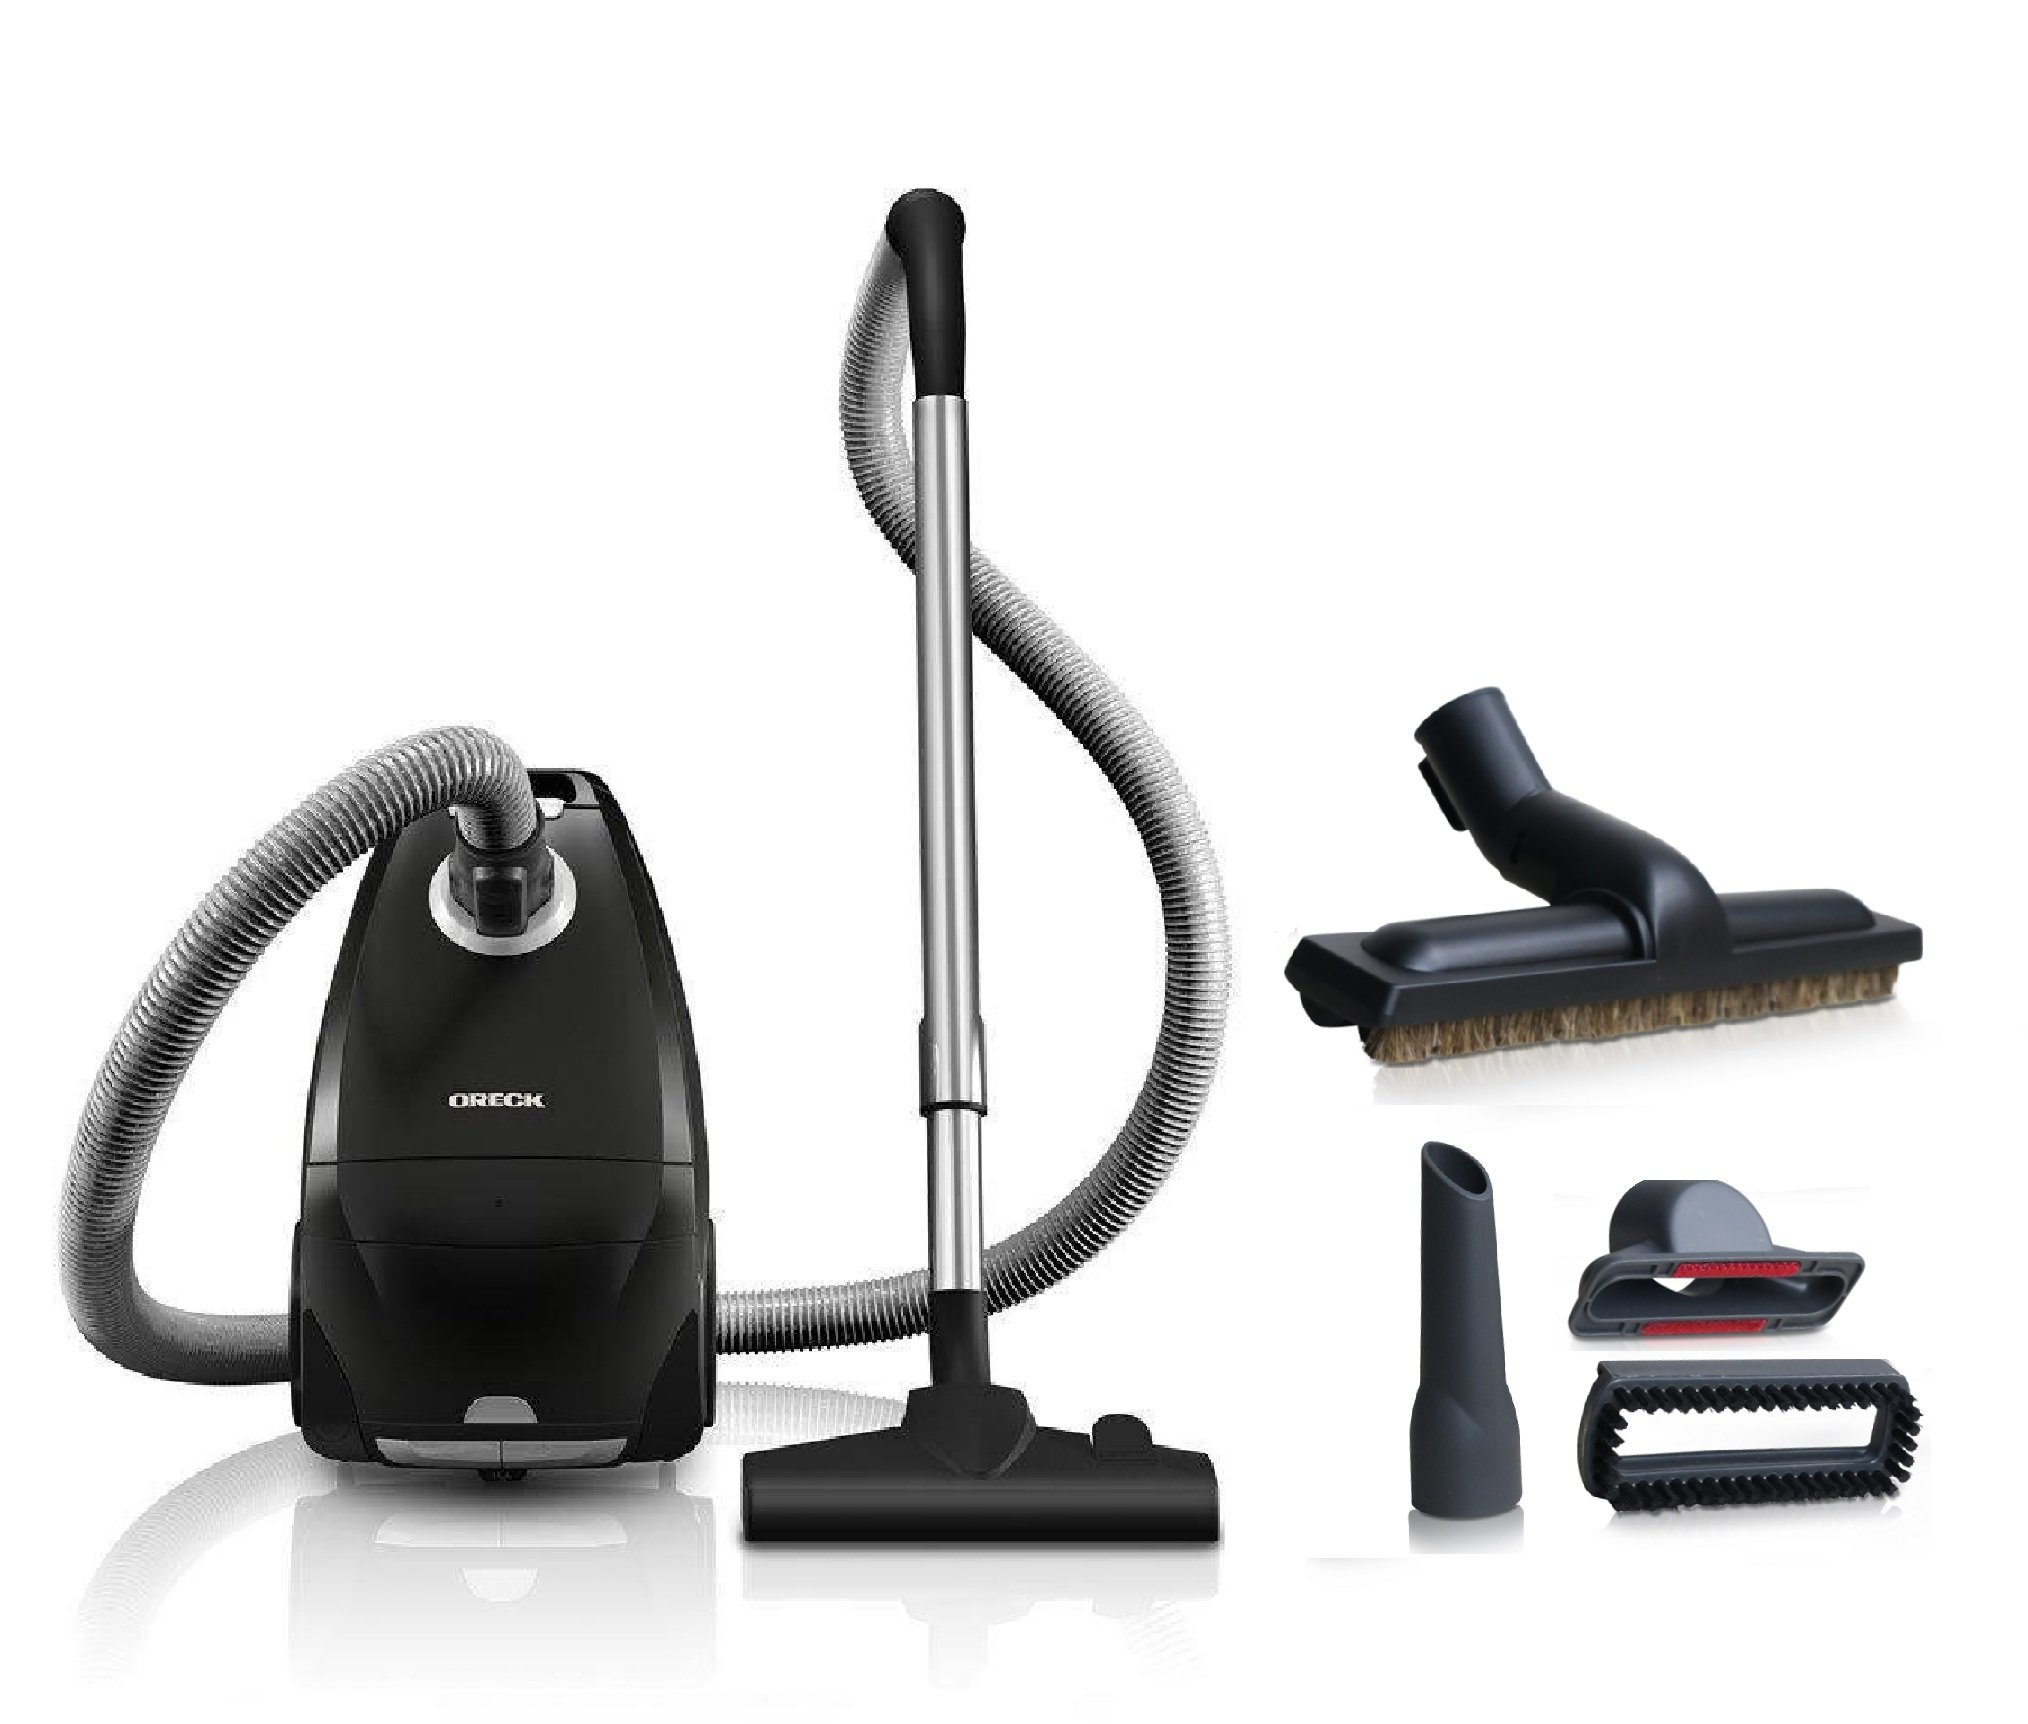 Oreck Venture Hardwood and Floor Bagged Canister Vacuum Cleaner, SK30075PC - Corded